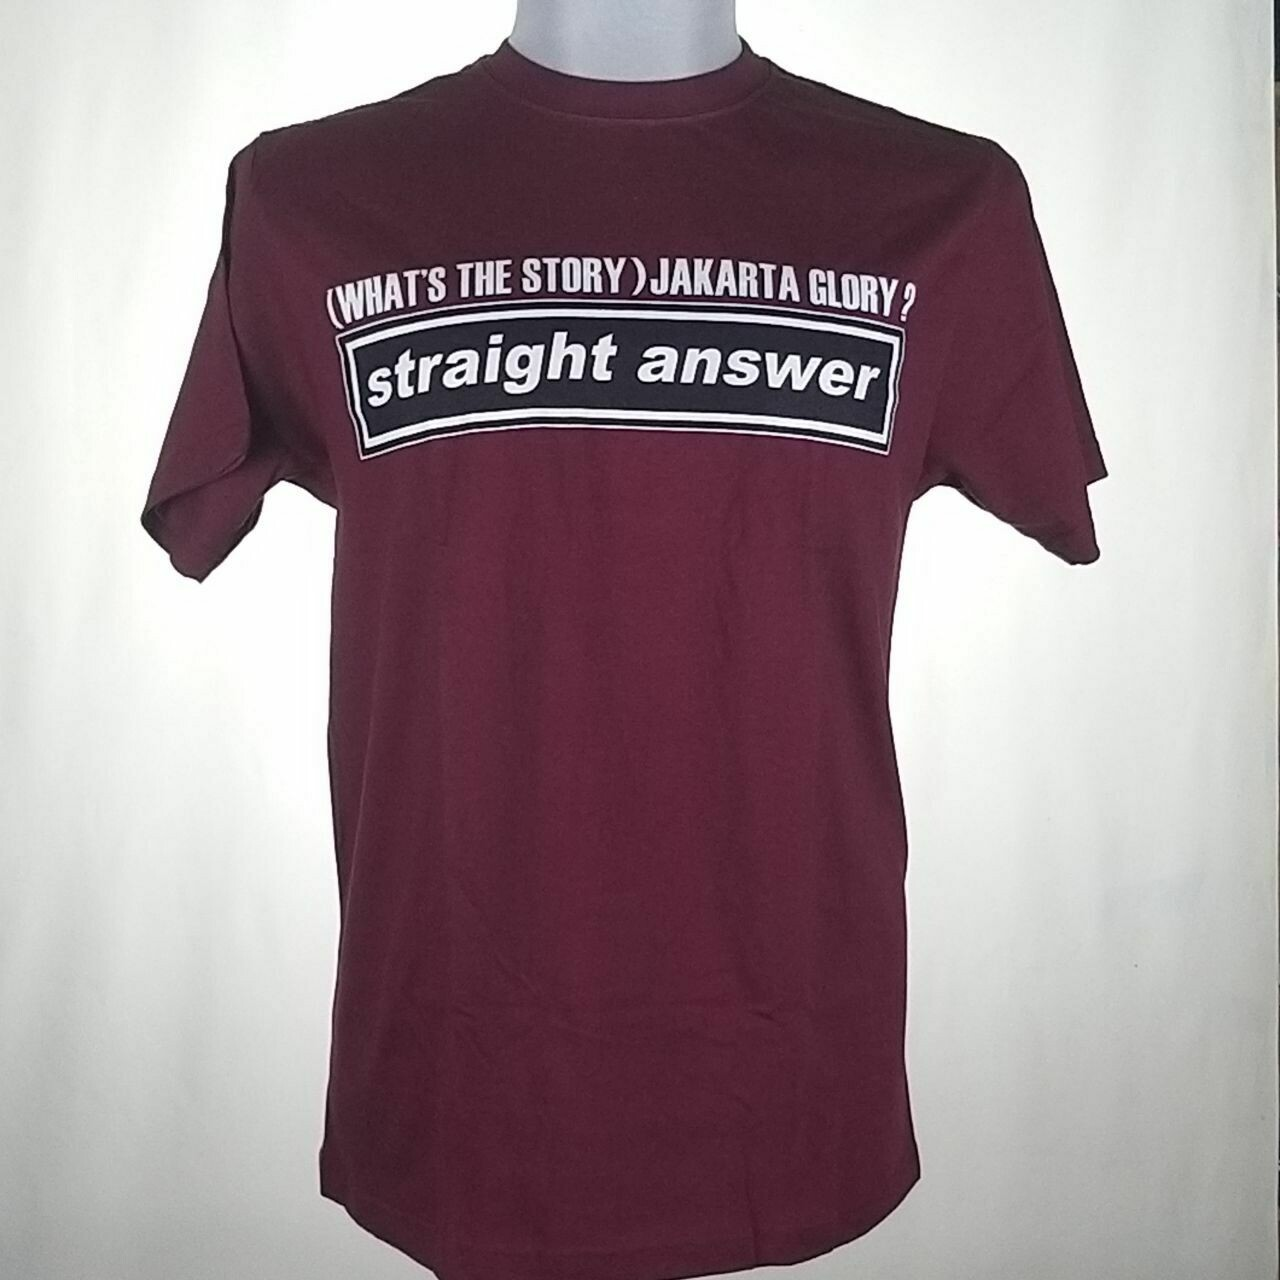 STRAIGHT ANSWER -(WHATS THE STORY)JAKARTA GLORY?- (MAROON)